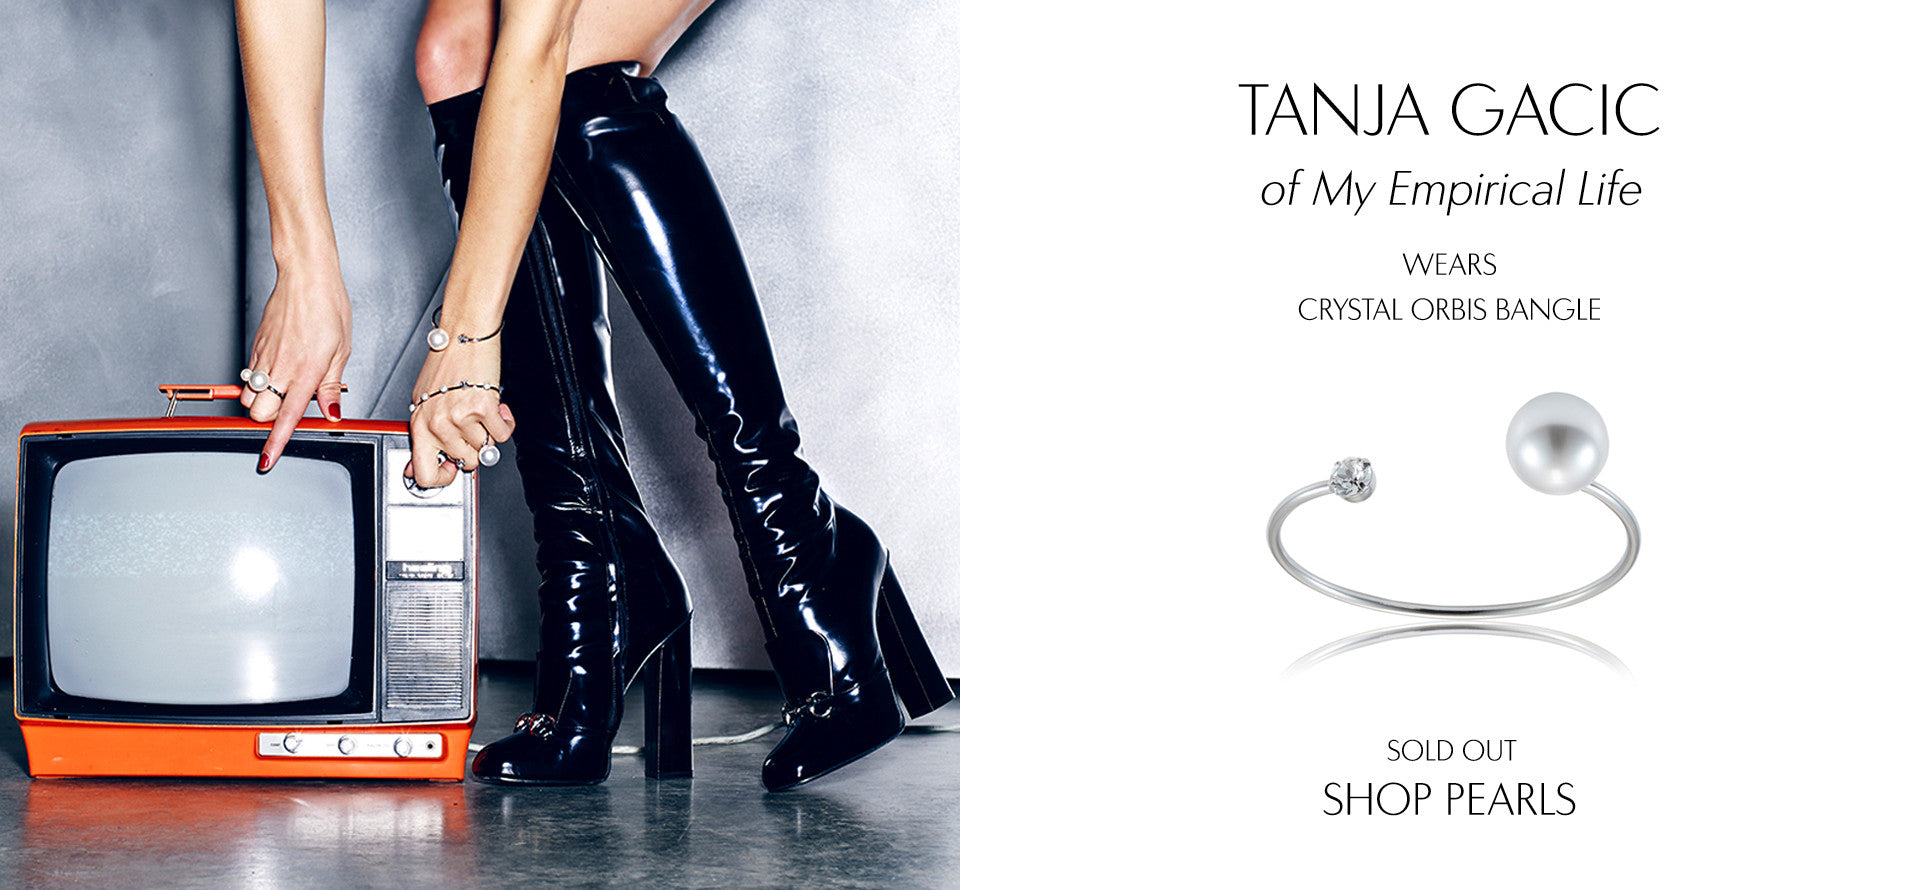 My EmpiricalLife - Fashion Blog by Tanja Gacic wears Sarina Suriano Crystal Orbis pearl bangle